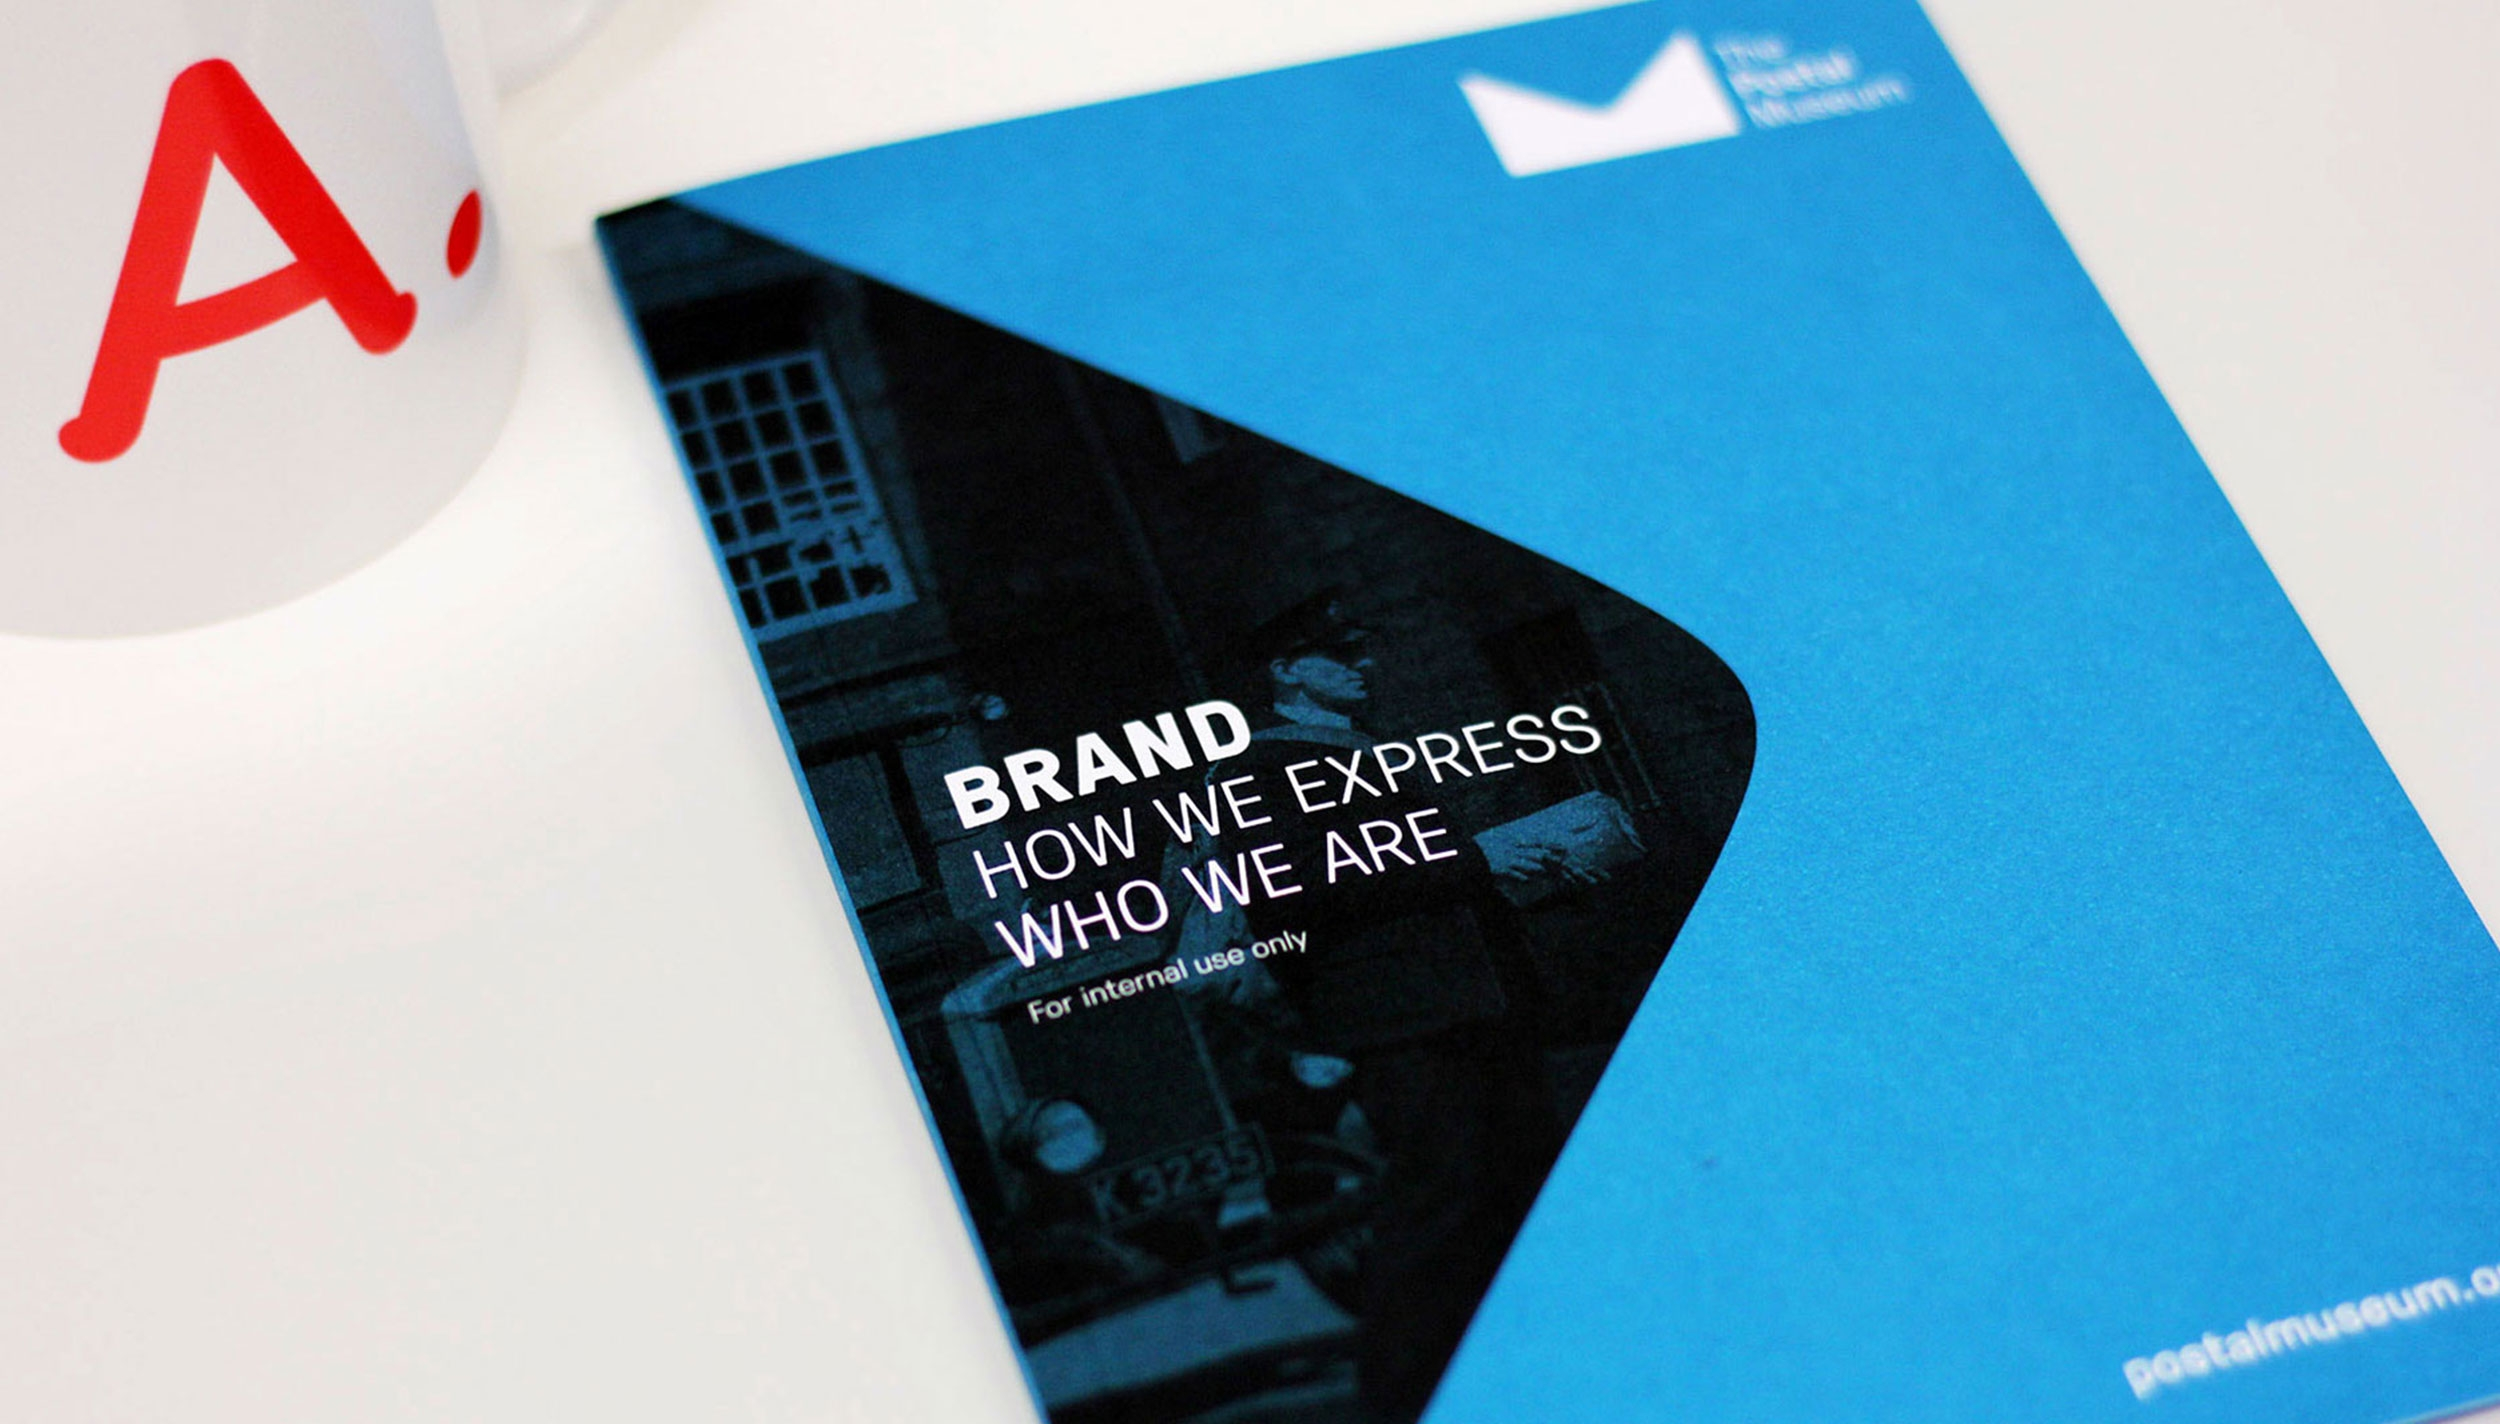 Museum brand guidelines, tone of voice, branding for the Postal Museum by Altogether Creative